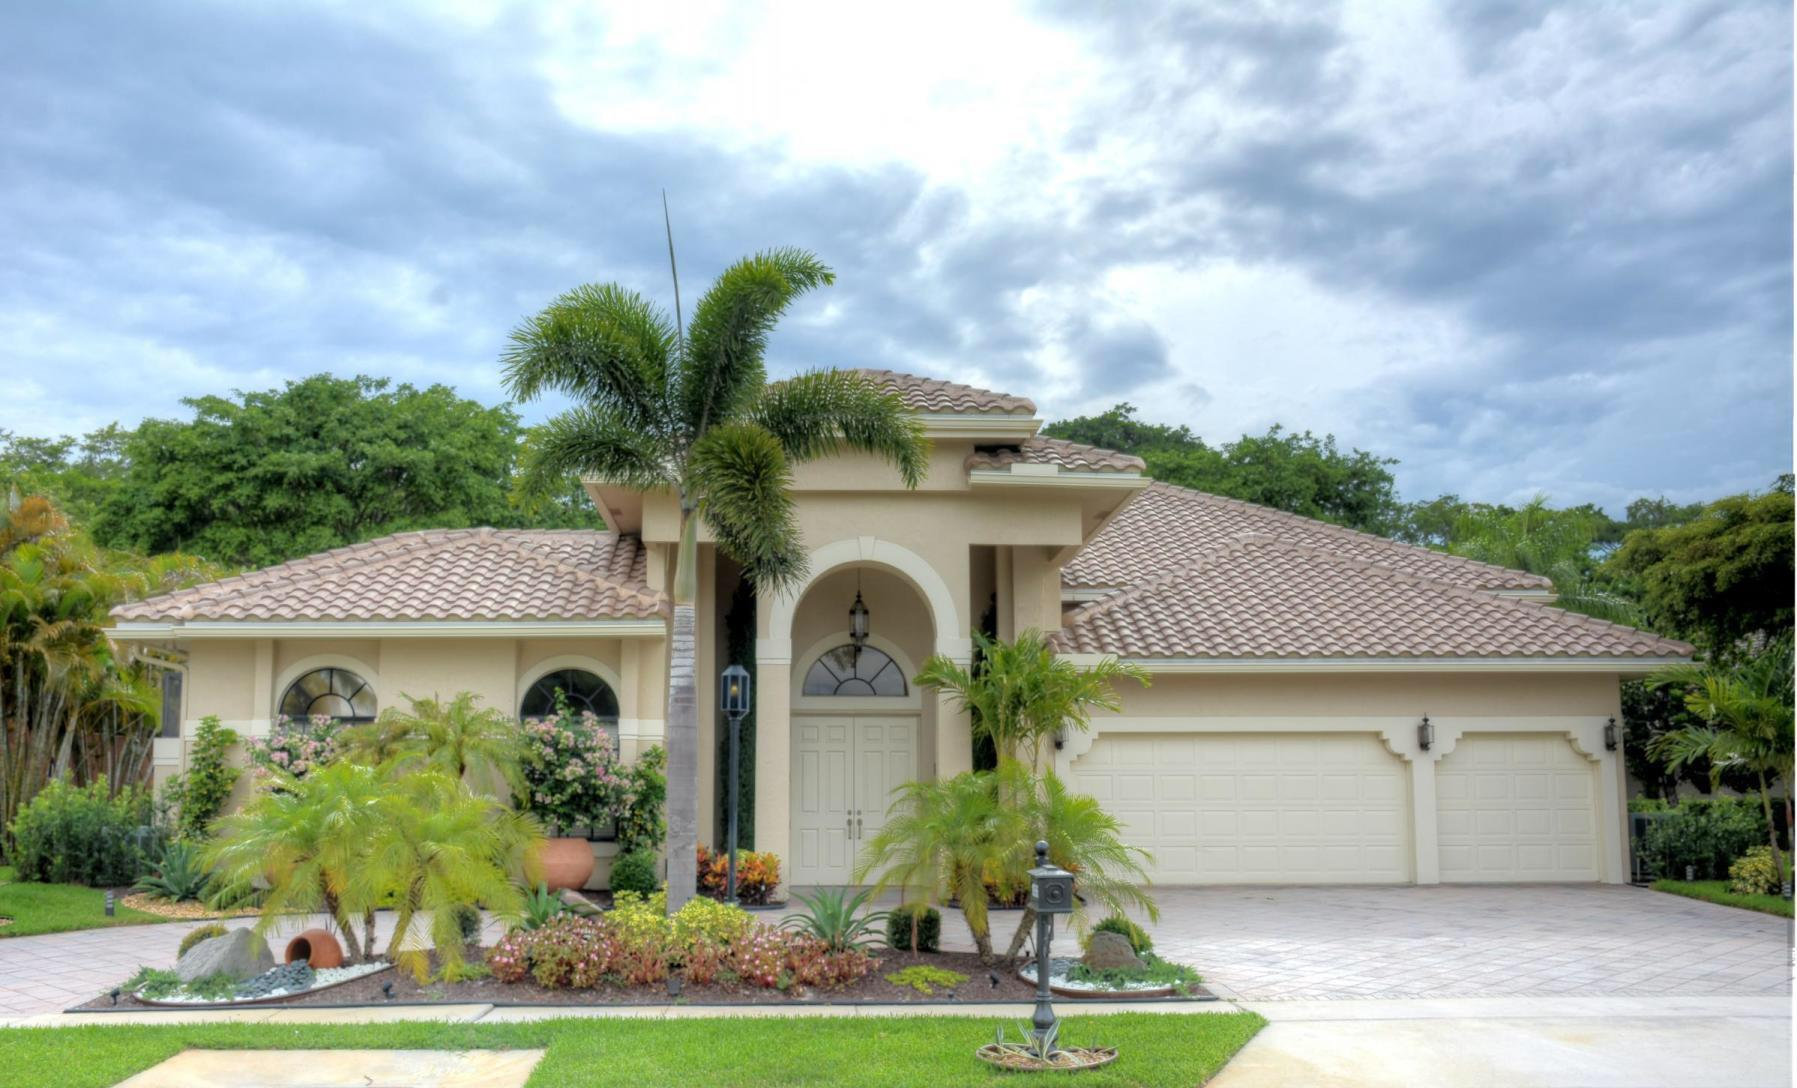 MAJOR PRICE REDUCTION!! BEAUTIFUL COURTYARD POOL HOME IN STONEBRIDGE COUNTRY CLUB. THIS HOME WAS RENOVATED IN 2014 AND SHOWS LIKE A MODEL. NEWER ROOF AND SELF CLEANING SALT WATER POOL. MAIN HOUSE HAS SPLIT FLOOR PLAN WITH 4 BEDROOMS, 4 FULL & 1 HALF BATHROOMS. SPACIOUS 1 BEDROOM GUEST HOUSE / EN SUITE BATHROOM. BEAUTIFUL KITCHEN WITH GRANITE COUNTER-TOPS AND UPGRADED APPLIANCES. PRIVATE POOL, SUMMER KITCHEN WITH GRANITE AND LEDGER STONE. THIS HOME IS AWESOME! NEWLY RENOVATED CLUBHOUSE WITH GOLF, TENNIS, SPA, STATE OF THE ART FITNESS CENTER, AND 24 HOUR GATED SECURITY.